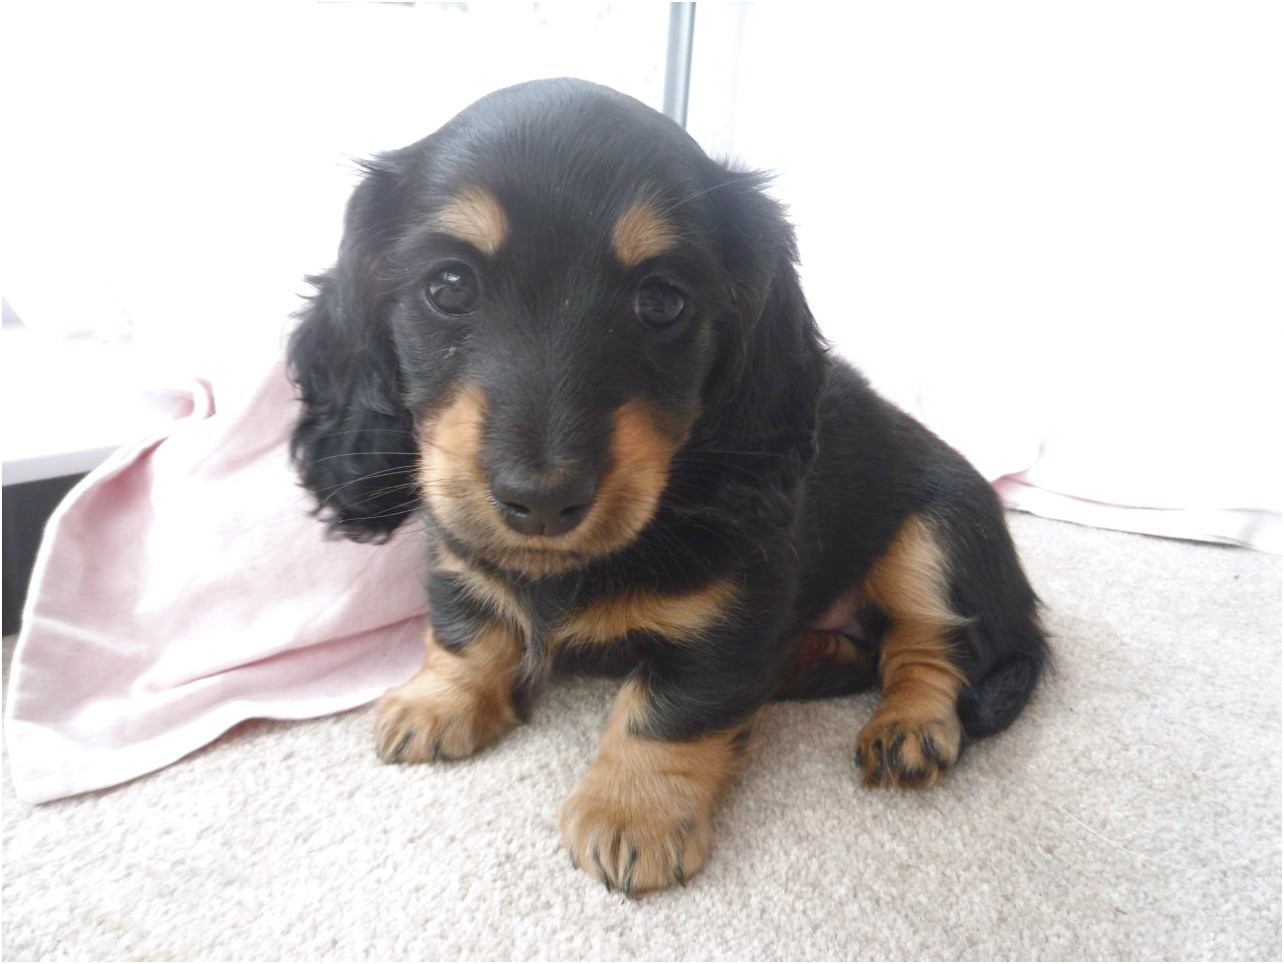 miniature longhaired dachshund puppies for sale near me